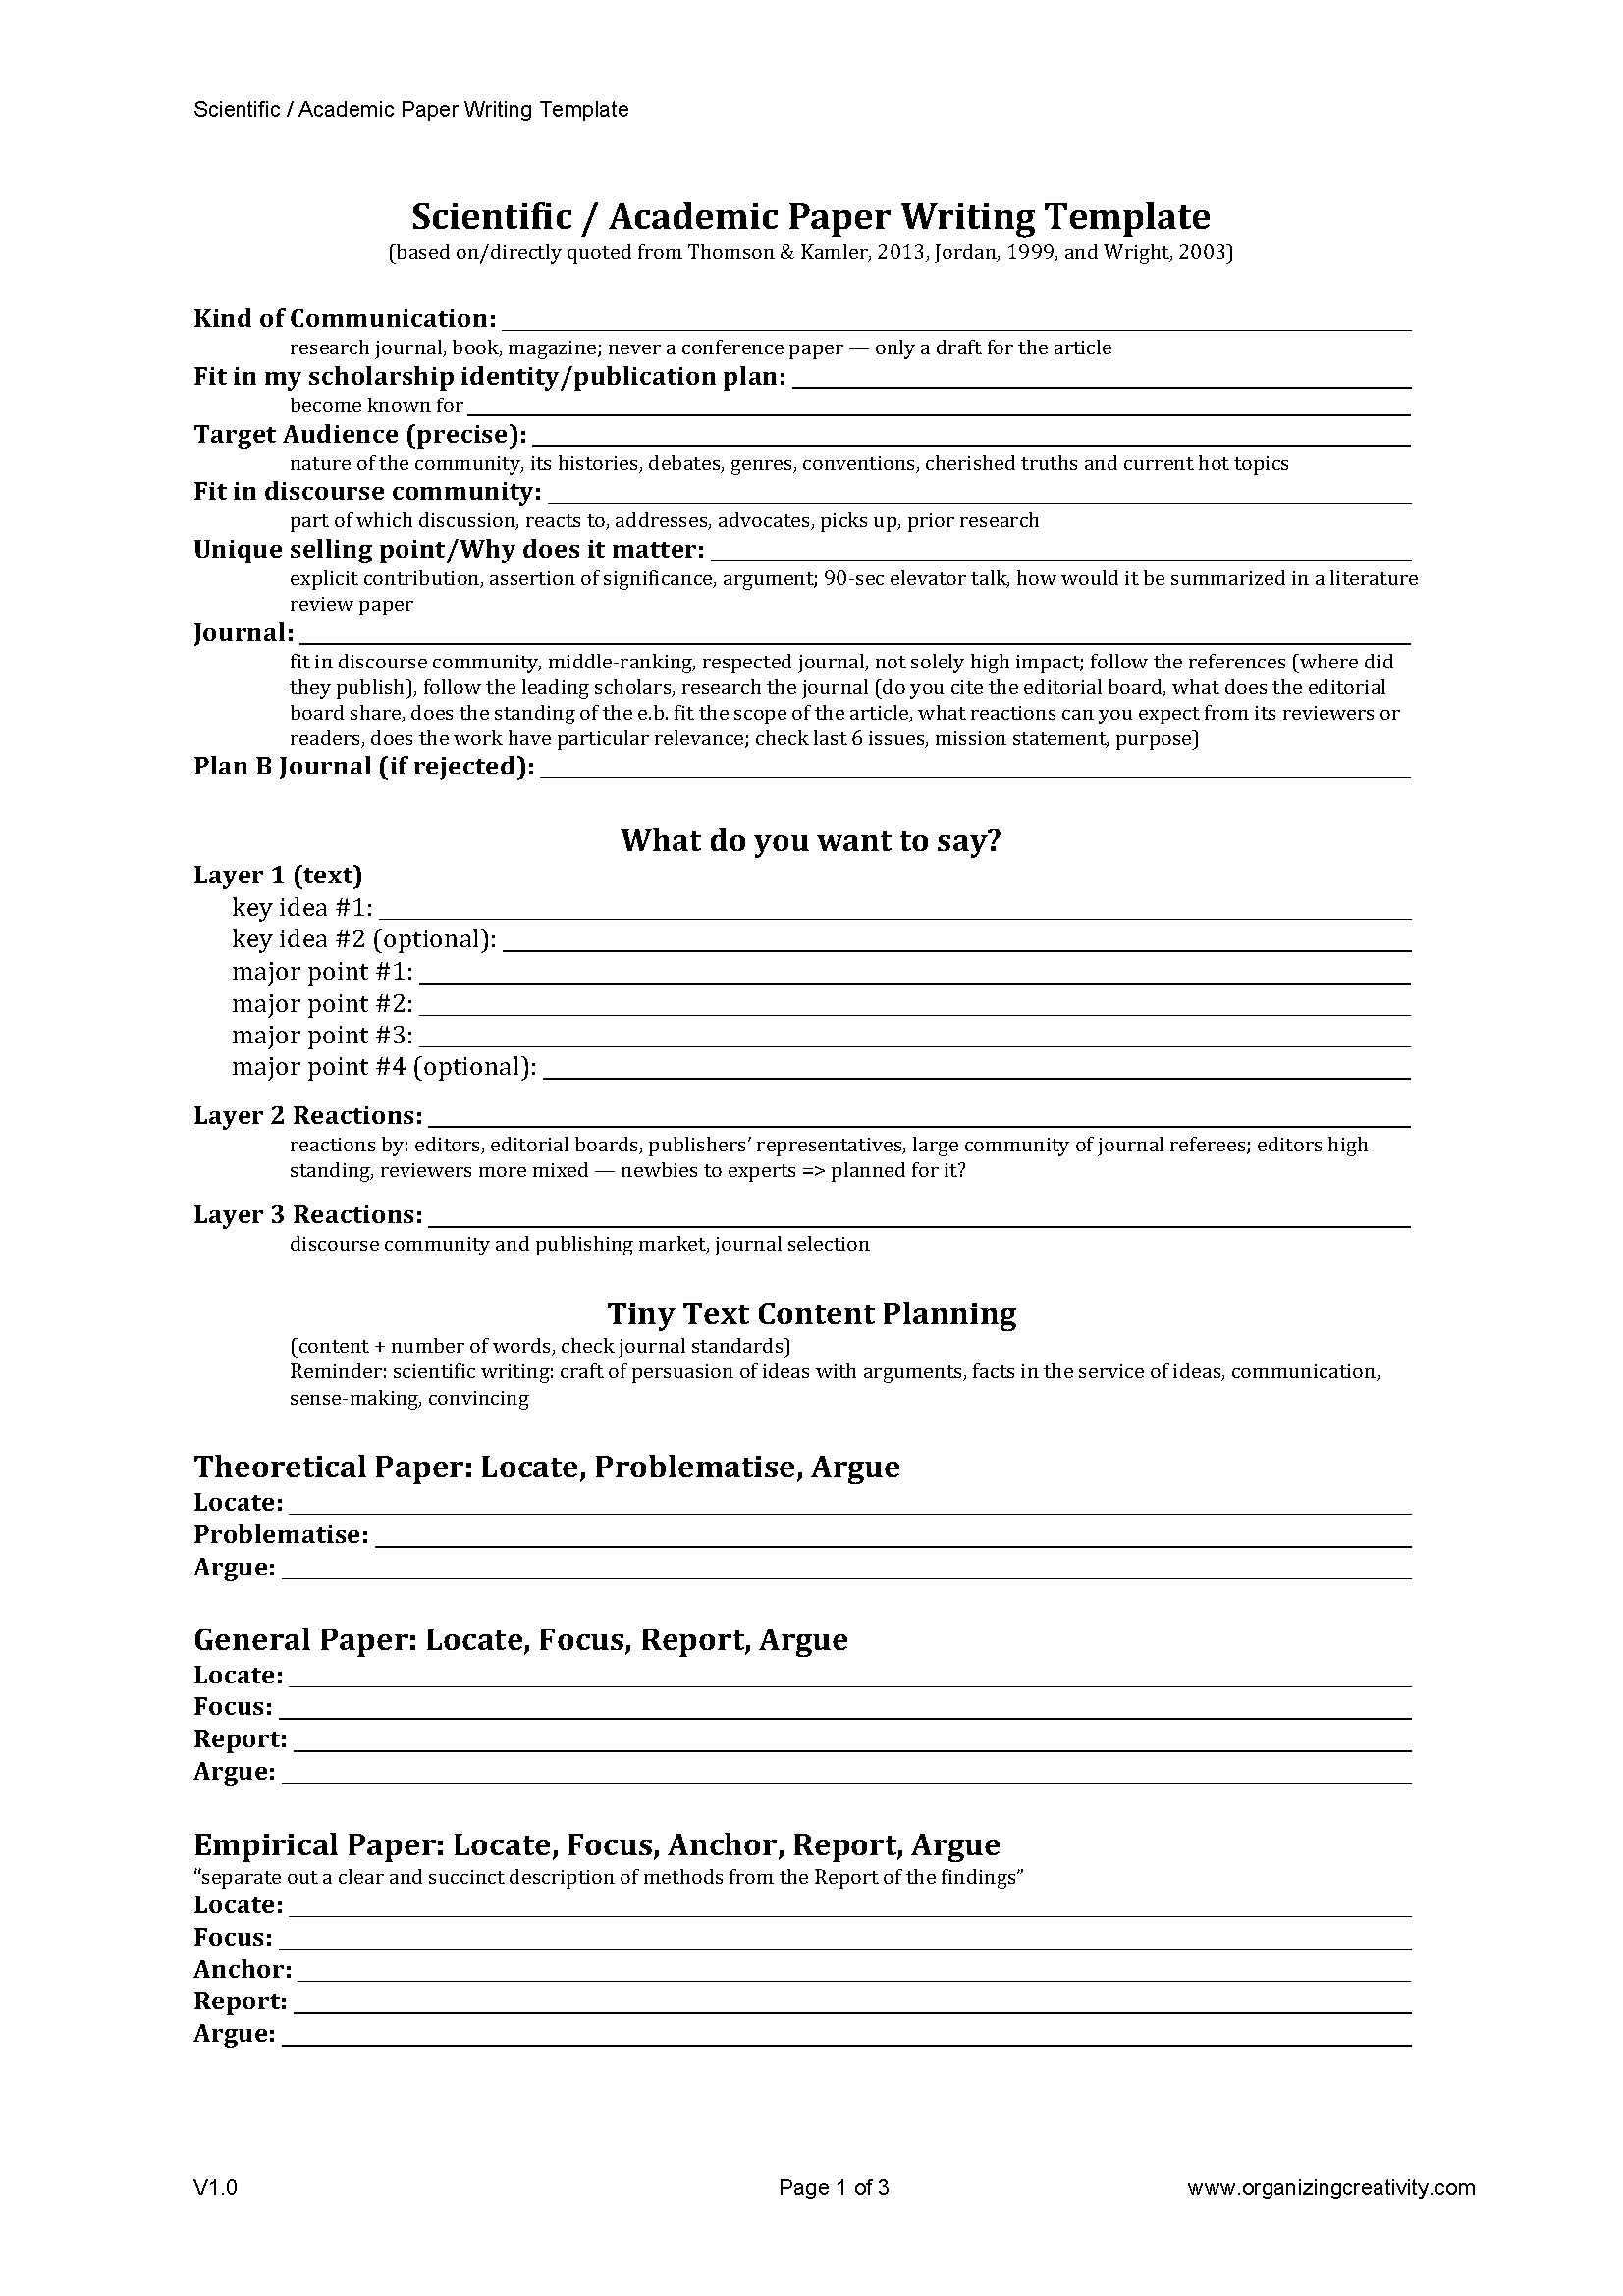 scientific academic paper writing template organizing creativity scientific academic paper writing template page 1